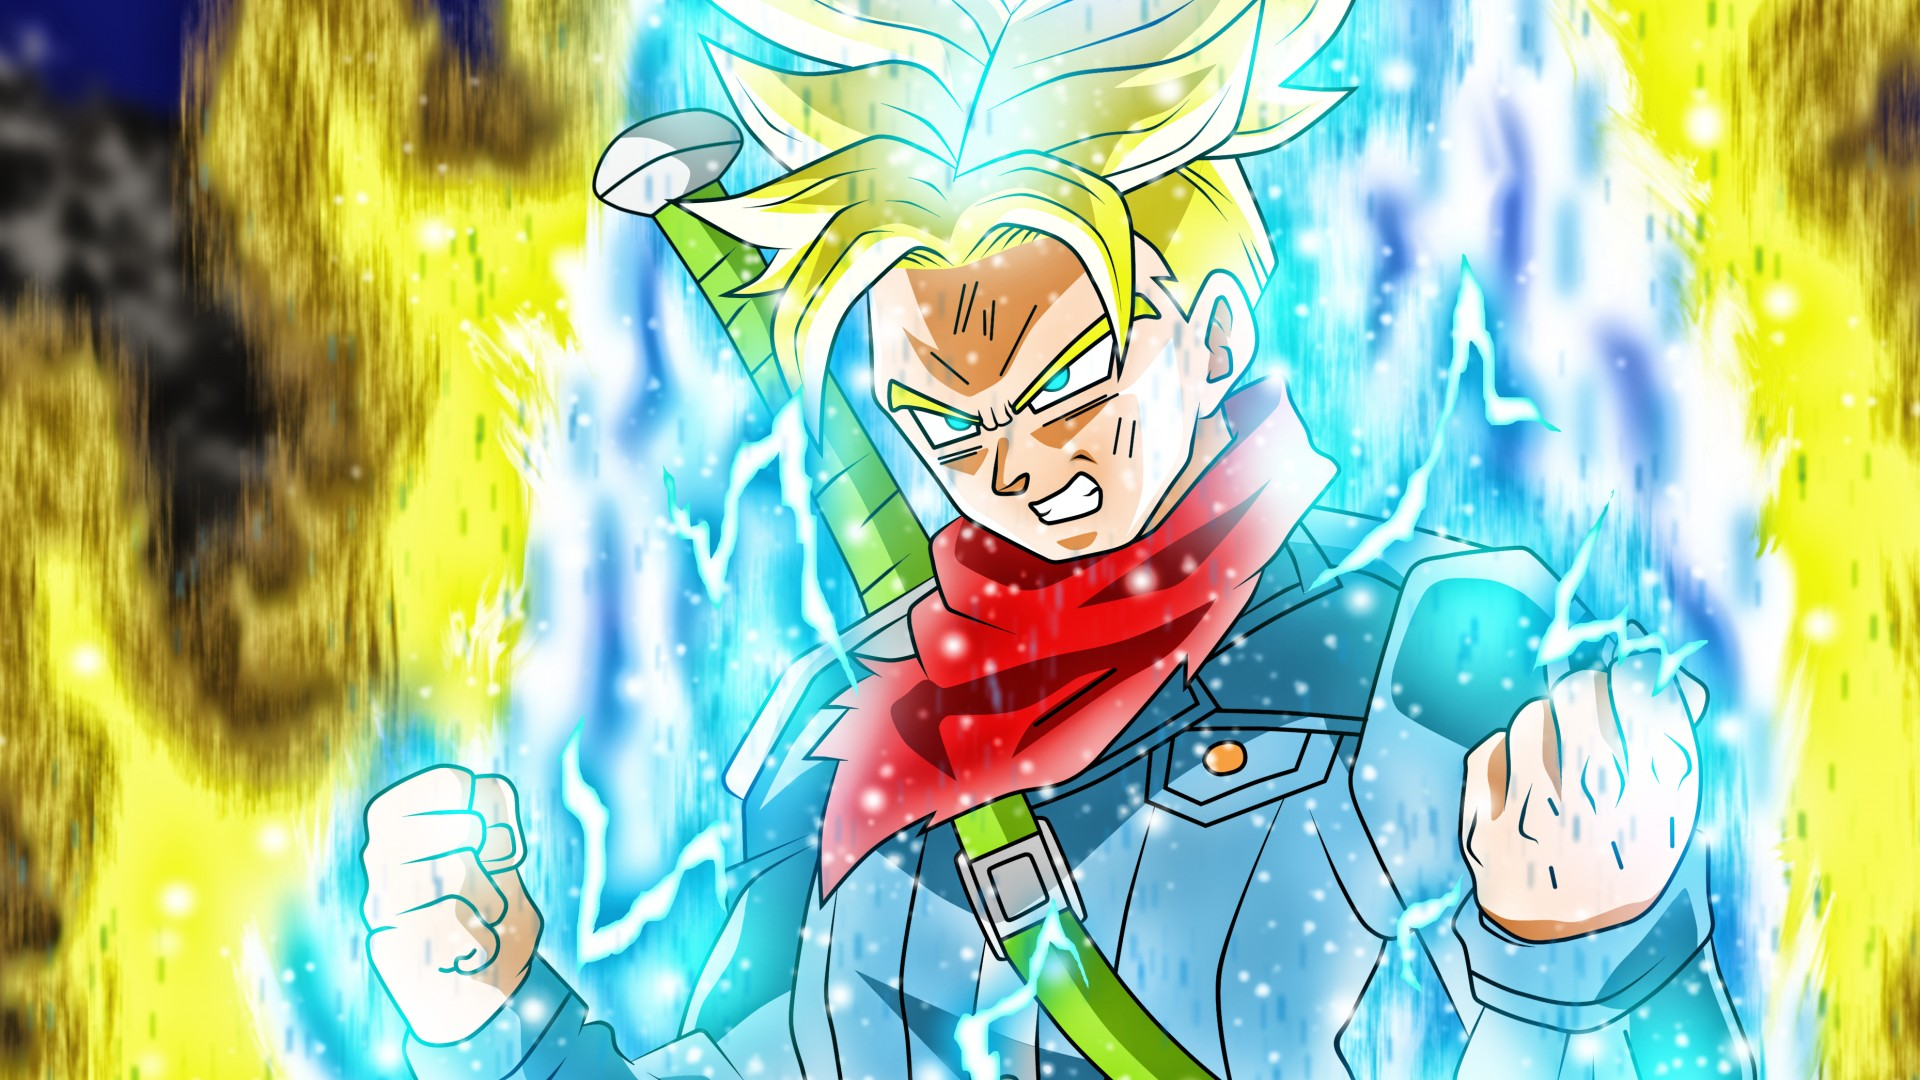 Trunks Wallpaper Hd Posted By Ethan Johnson